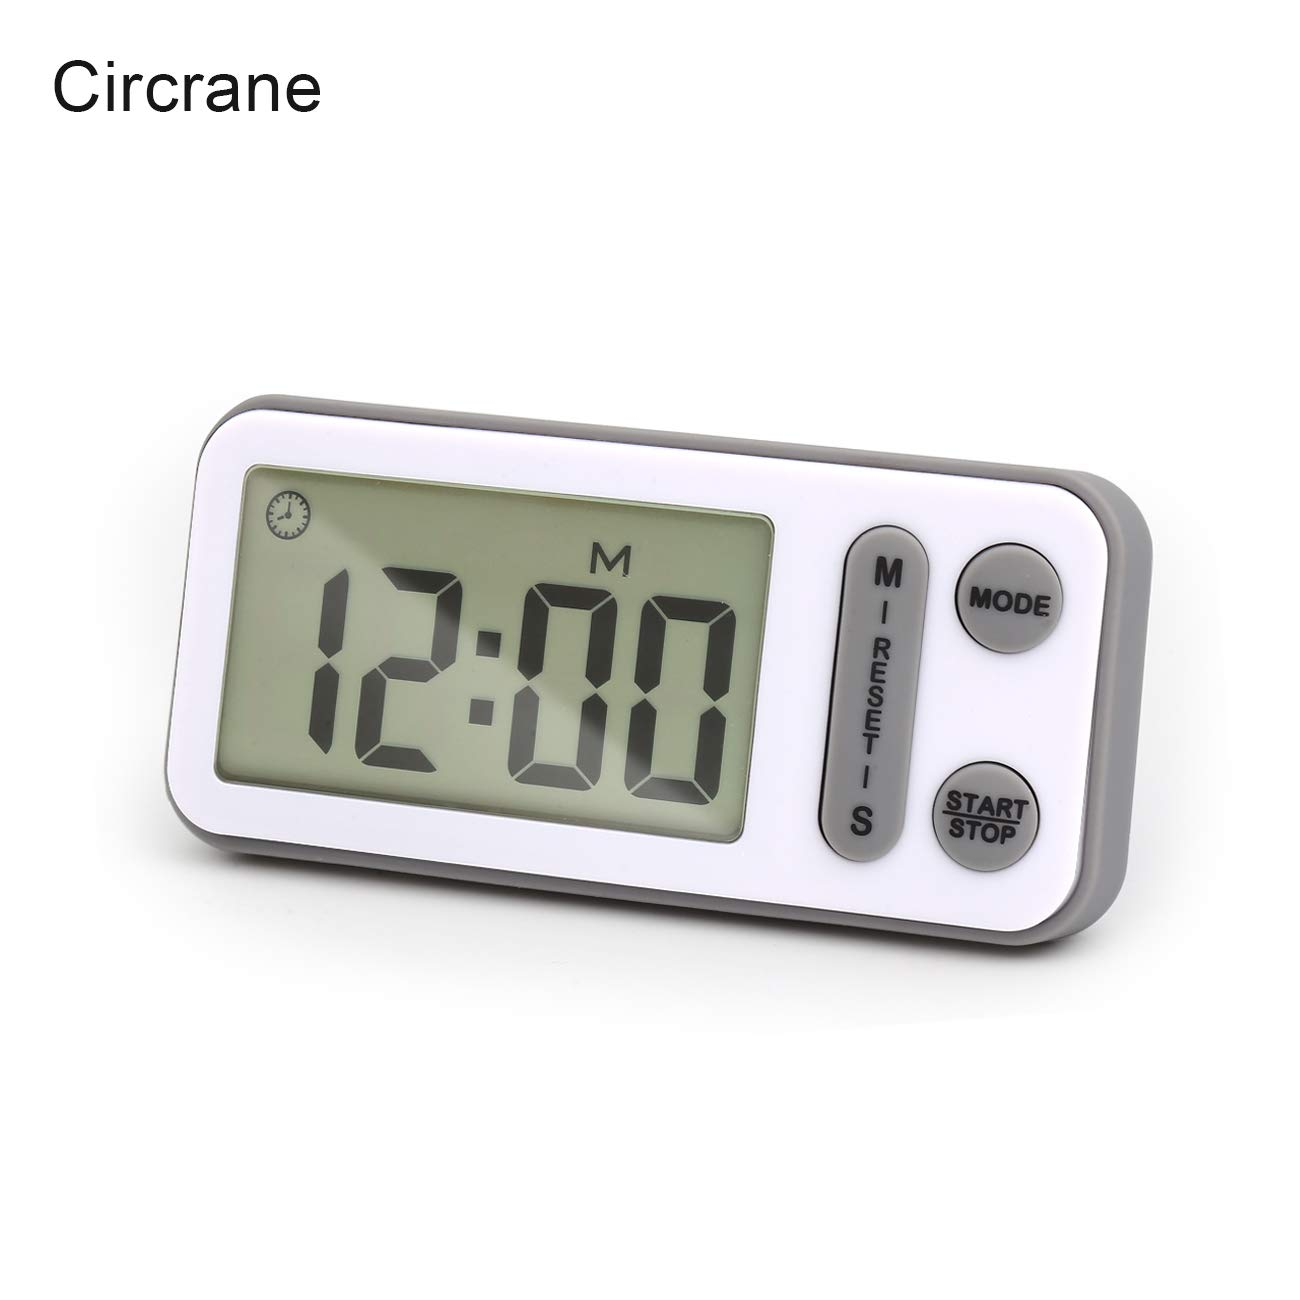 Digital Kitchen Timer, Circrane Cooking Timer battery operated, Large Display, Strong Magnet Back,Memory Function, Display Loud Alarm Clock, for Cooking Baking Sports Games Office (Grey)